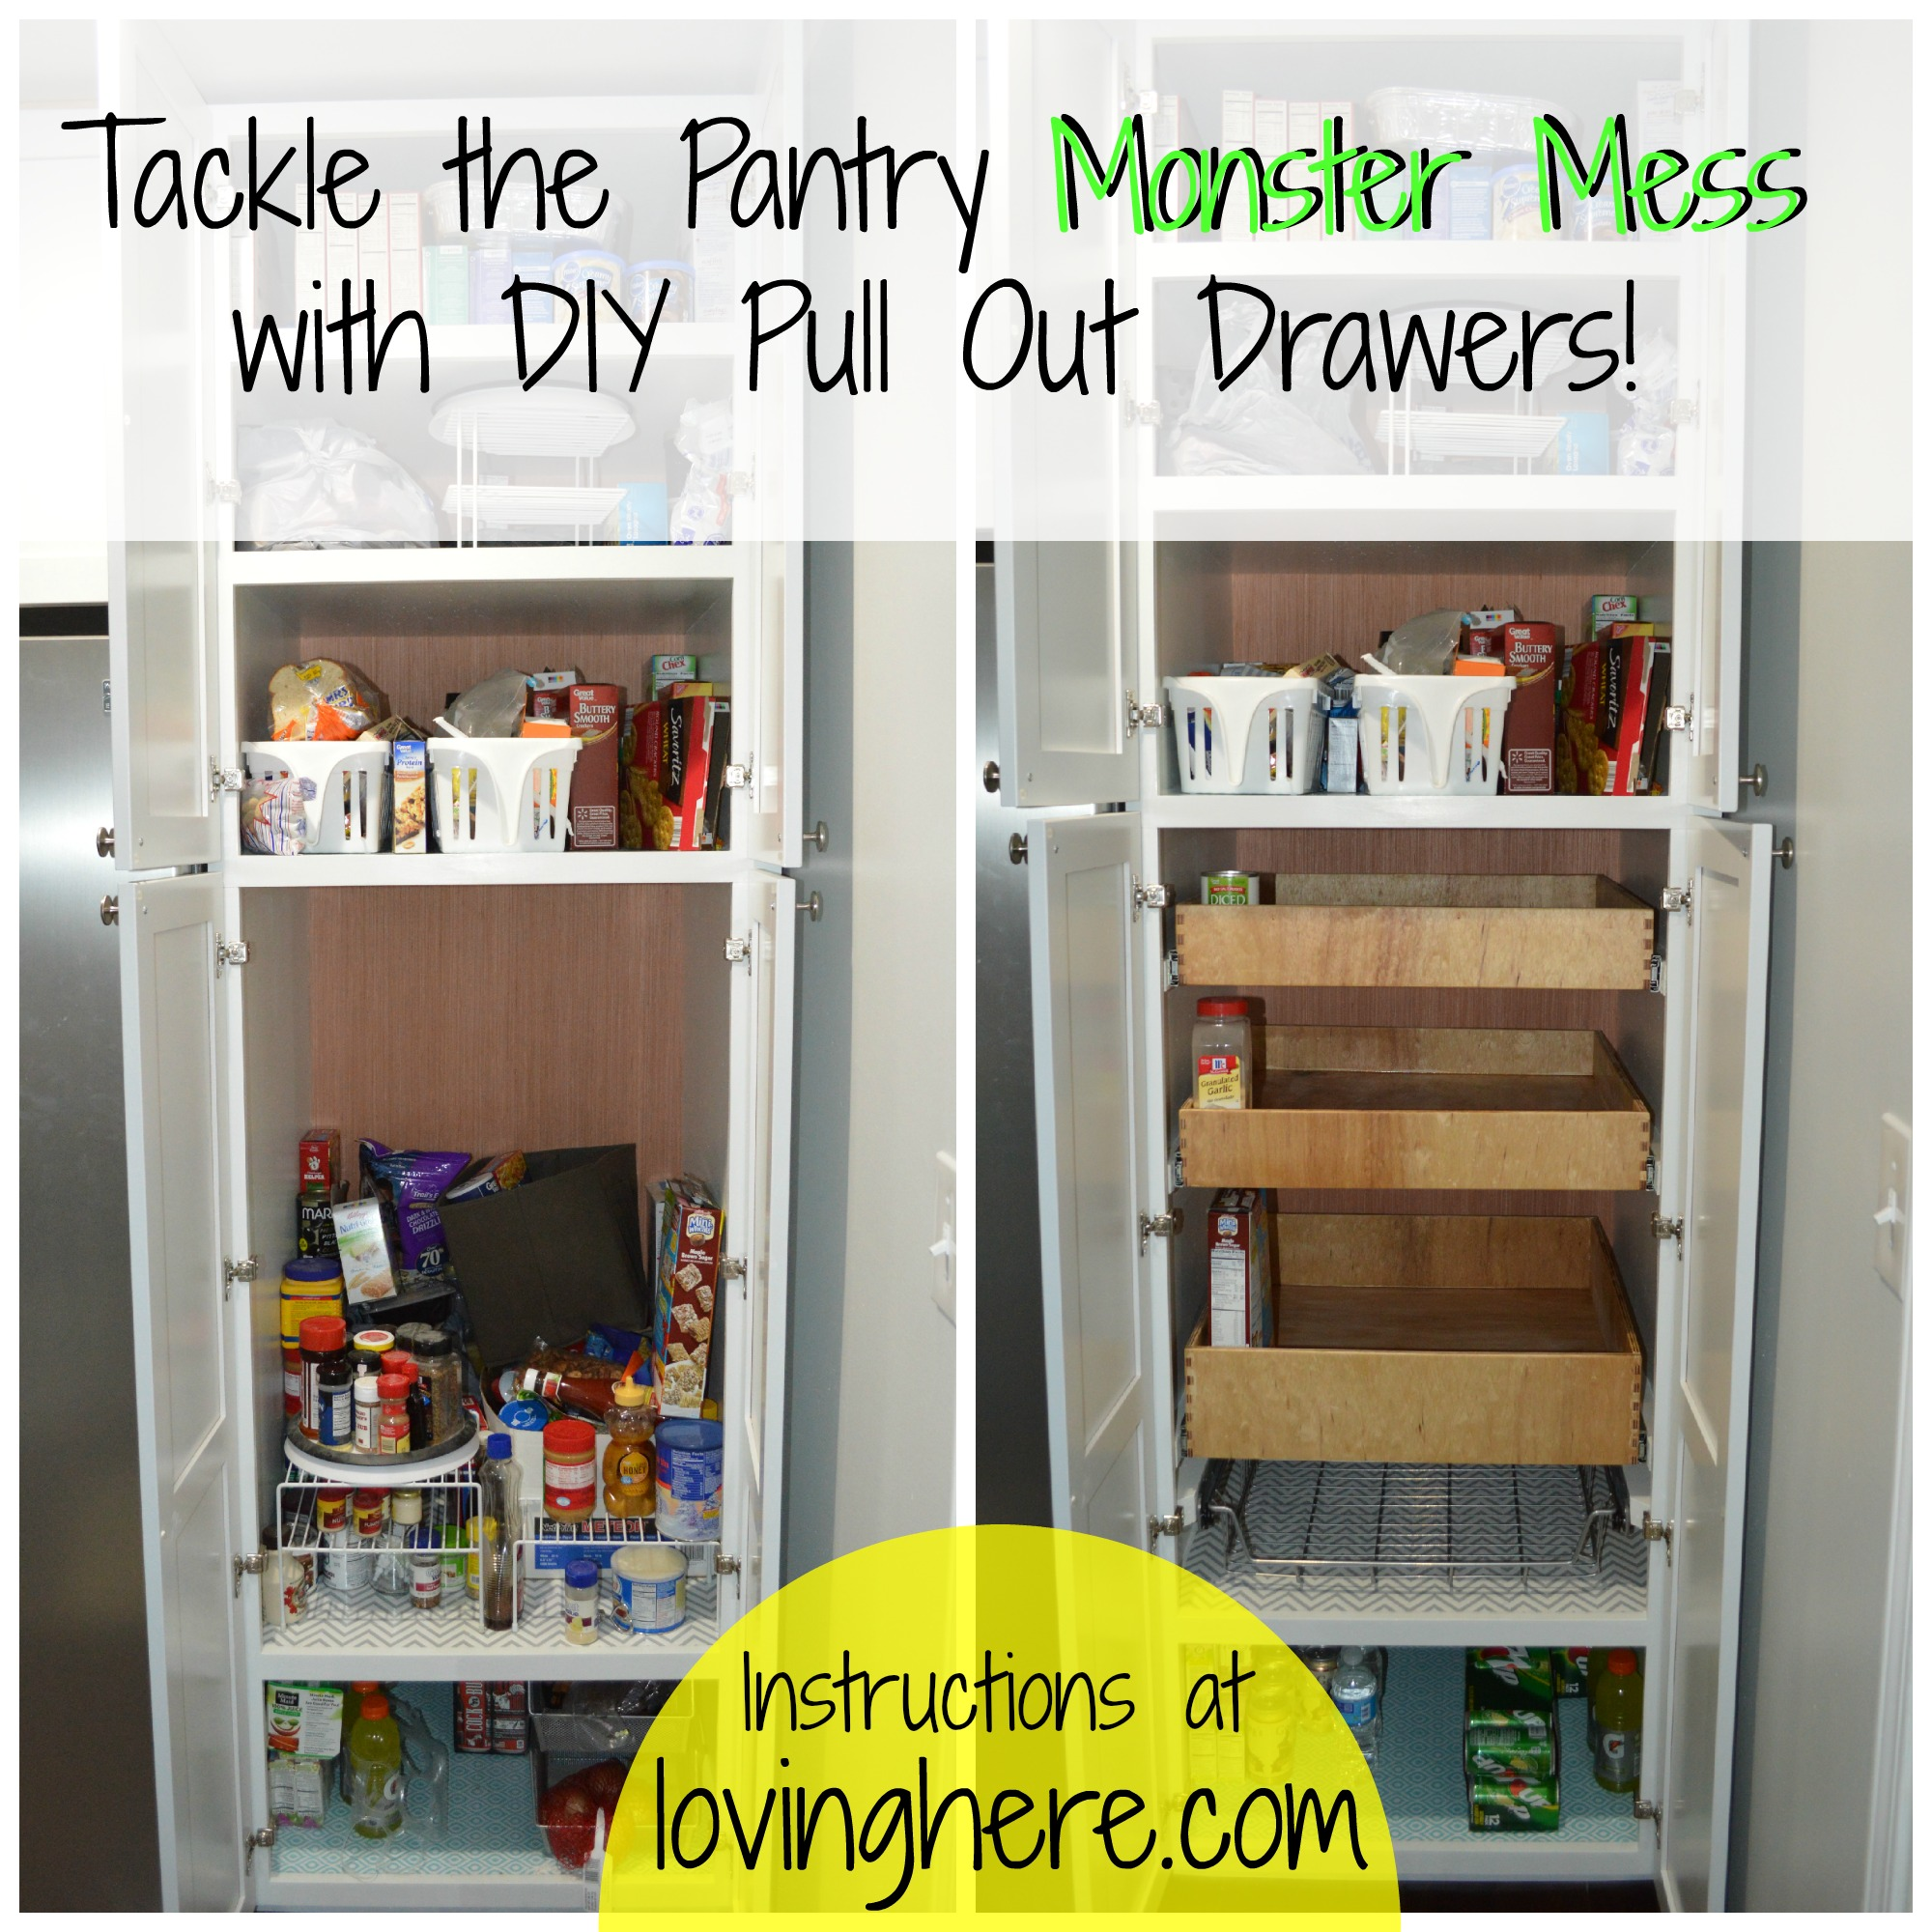 diwyatt building pull out pantry drawers loving here. Black Bedroom Furniture Sets. Home Design Ideas